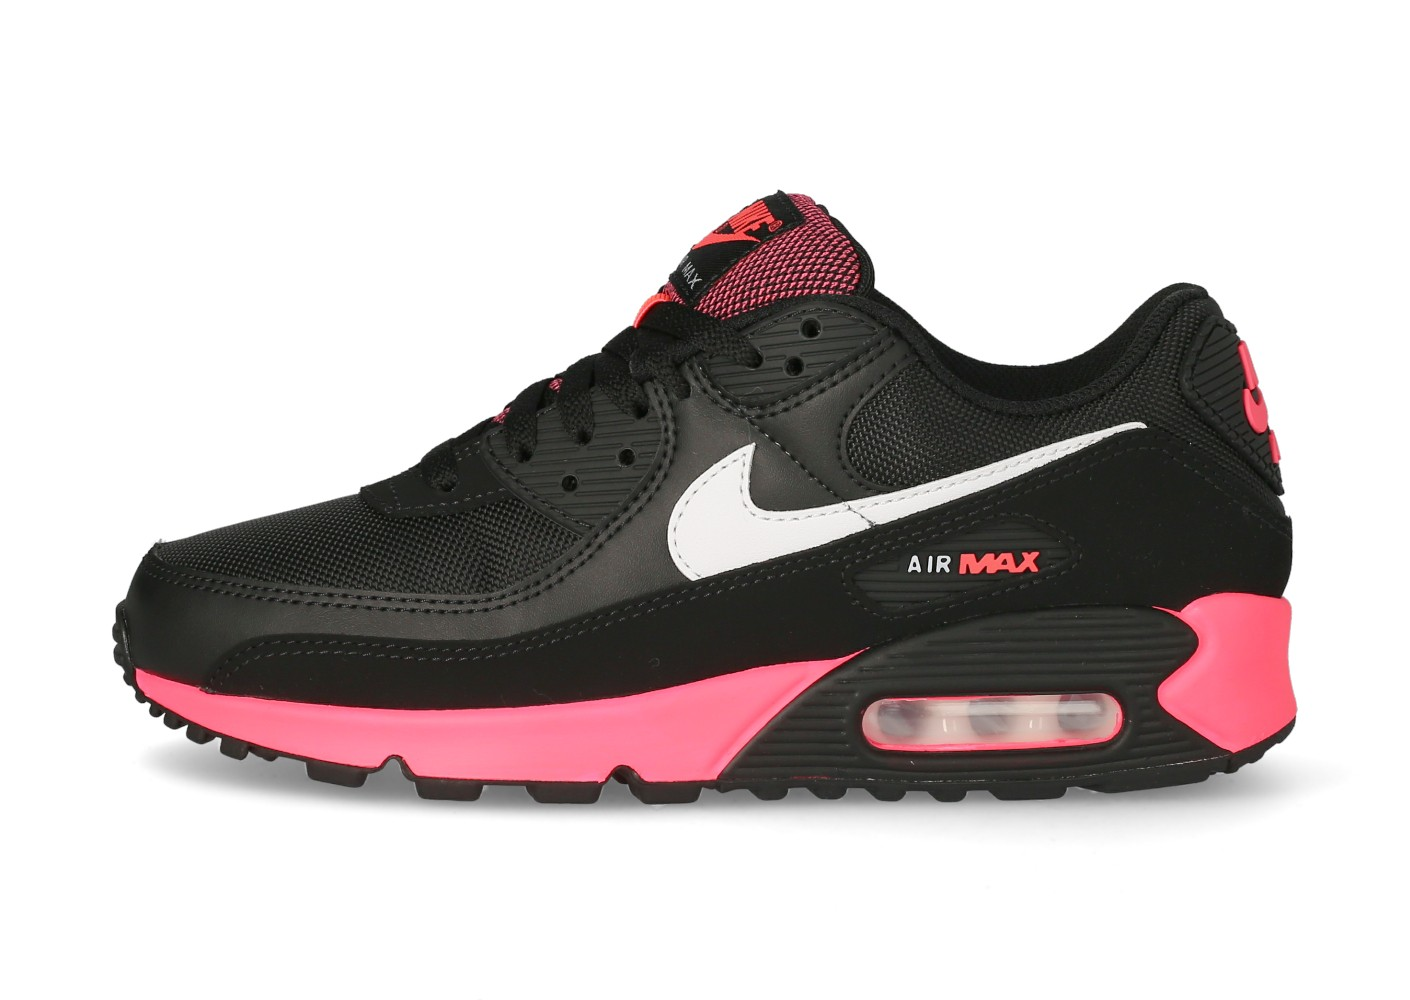 Nike Air Max 90 Homme noir Racer Pink - Chaussures Baskets homme ...